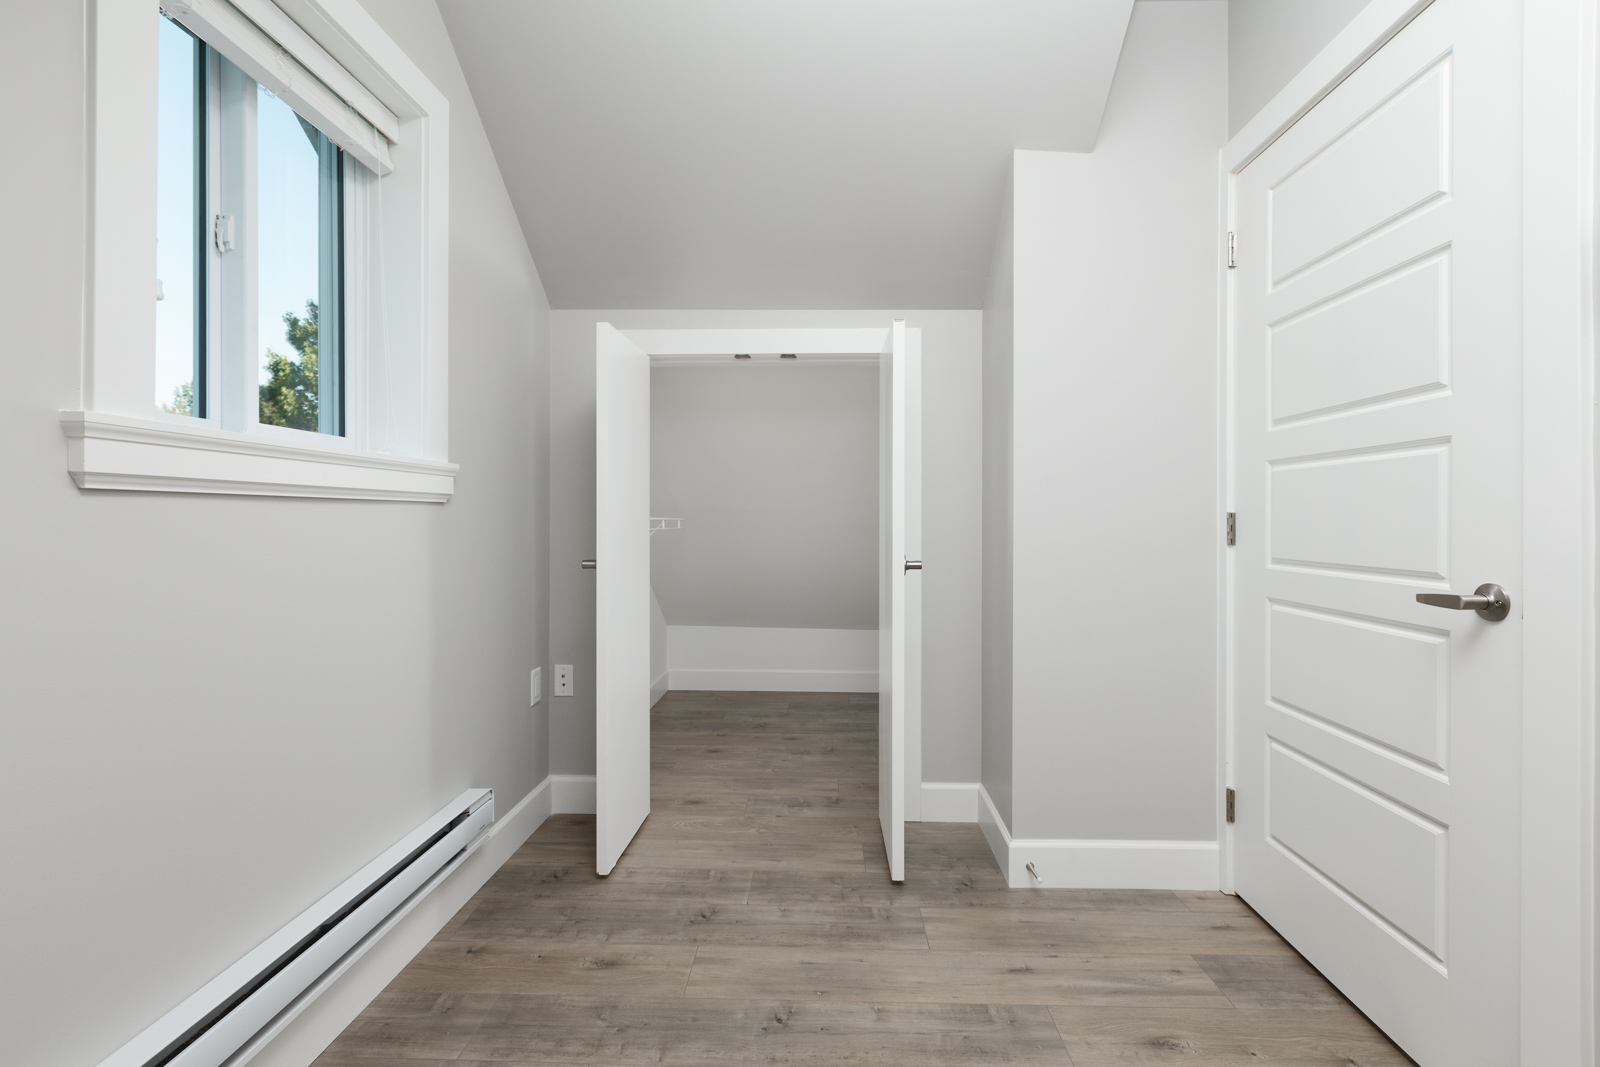 Interior hallway of Vancouver rental laneway home managed by Birds Nest Properties.